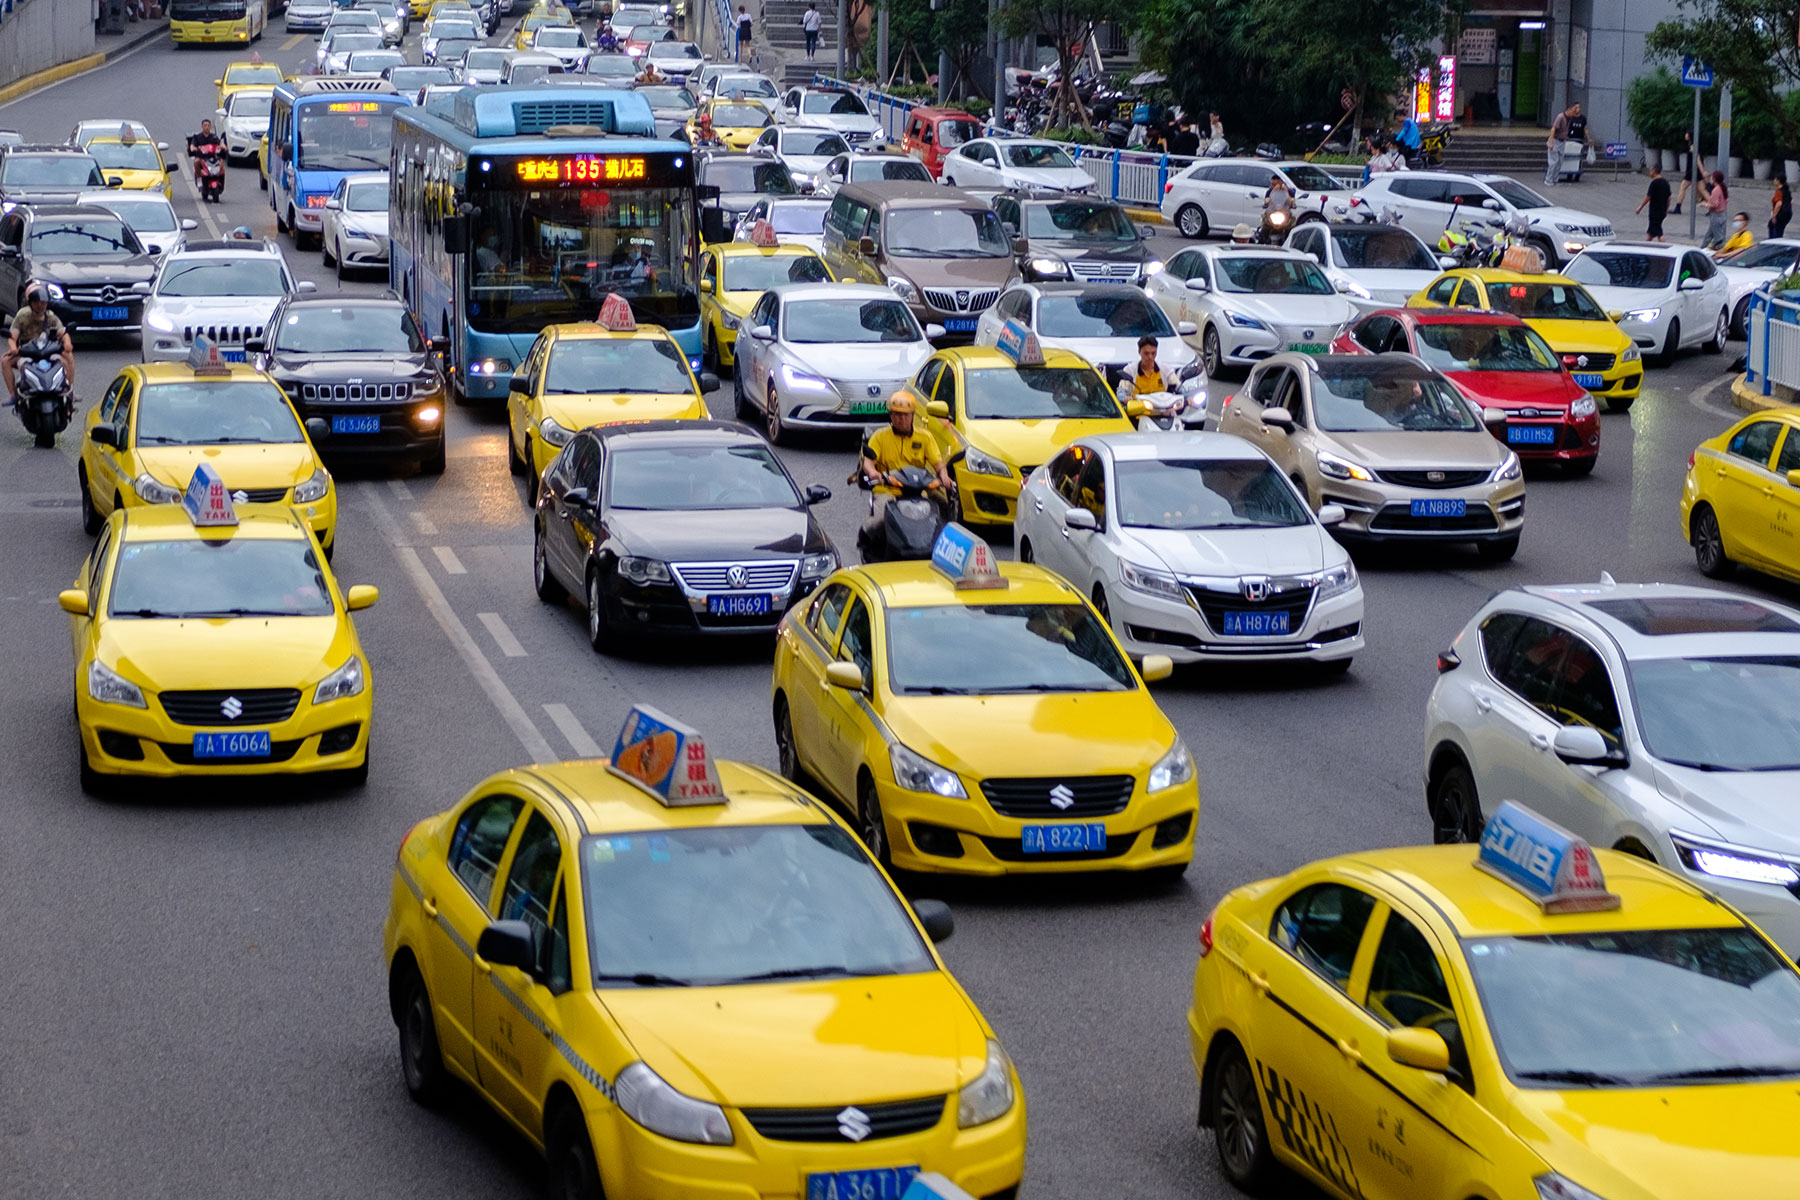 Volle Straße mit gelben Taxis in Chongqing in China